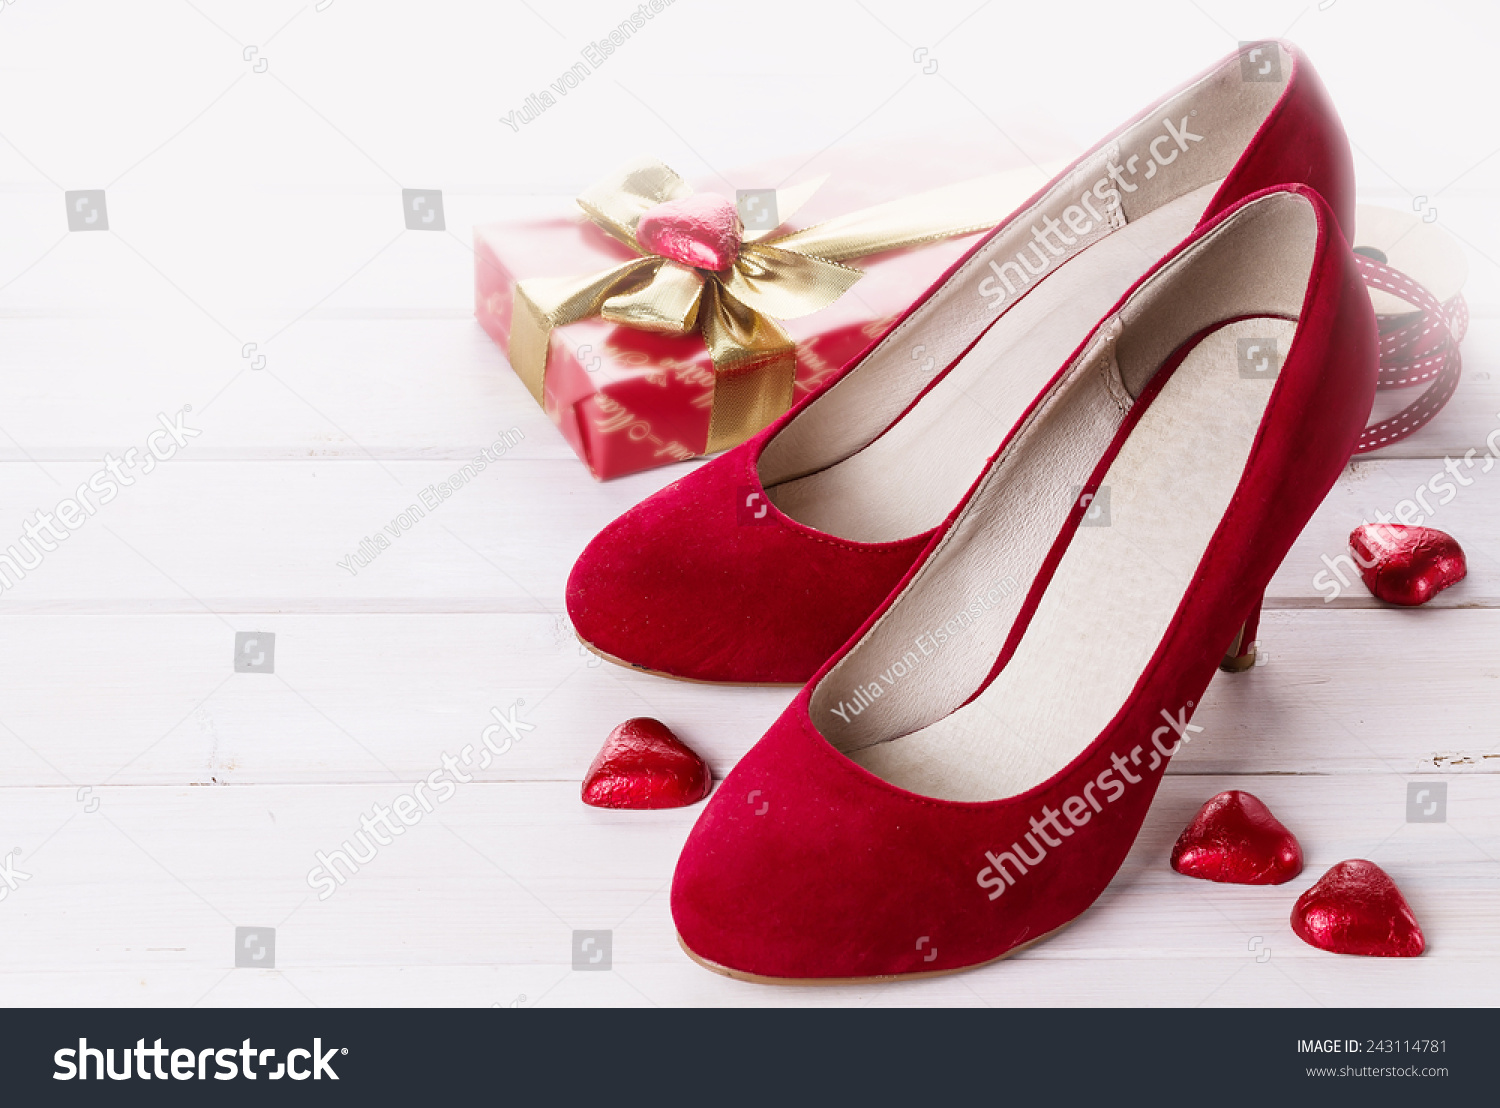 Valentine Day Items   Pair Of Red Shoes, Gift Box And Red Chocolate Hearts  Over